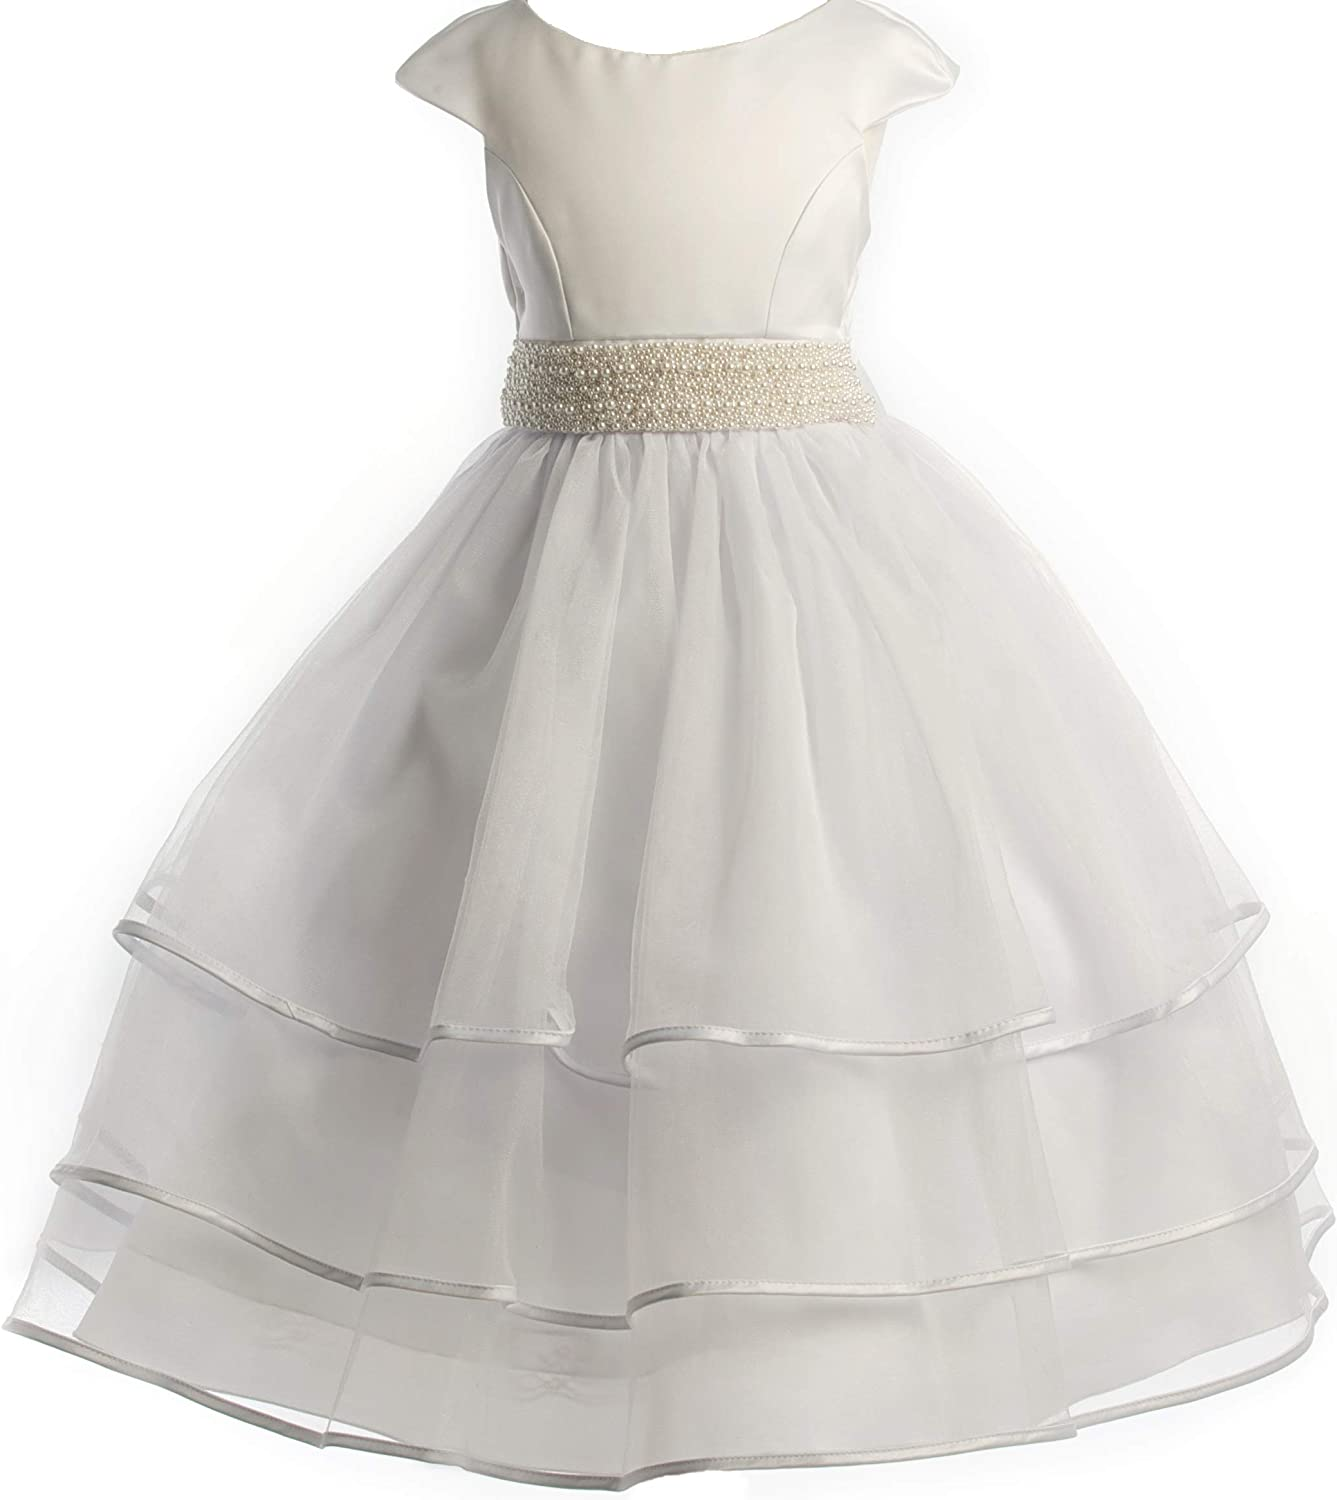 Little Girls Cap Sleeve Pearl Accented First Communion Flowers Girls Dresses USA